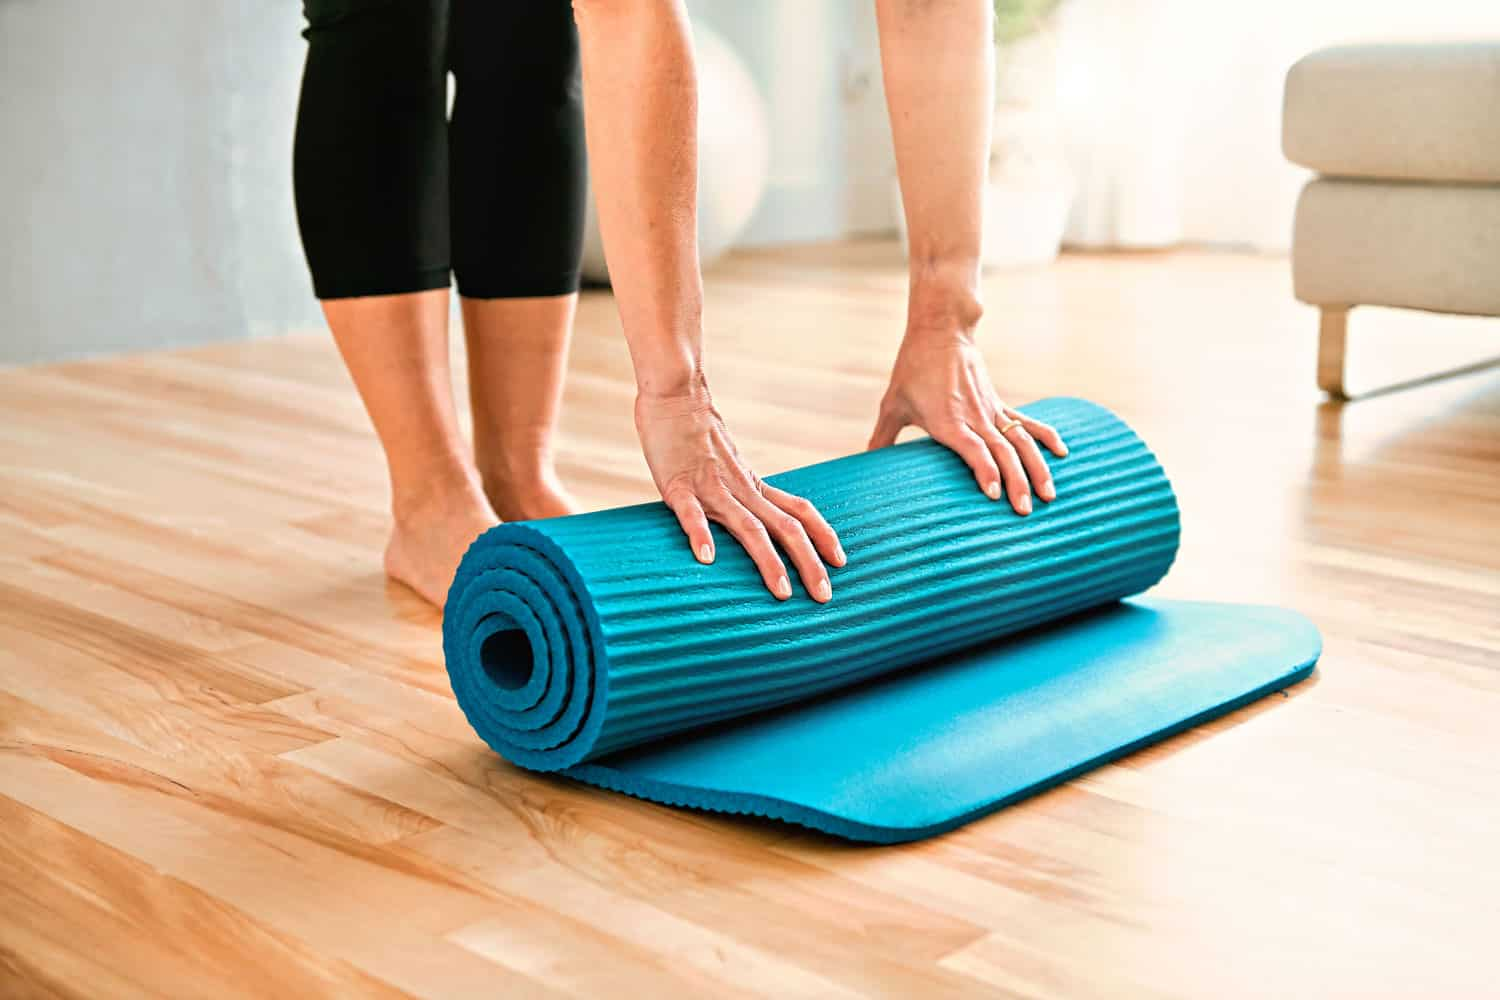 A woman unrolling her yoga mat on her living room before doing pilates